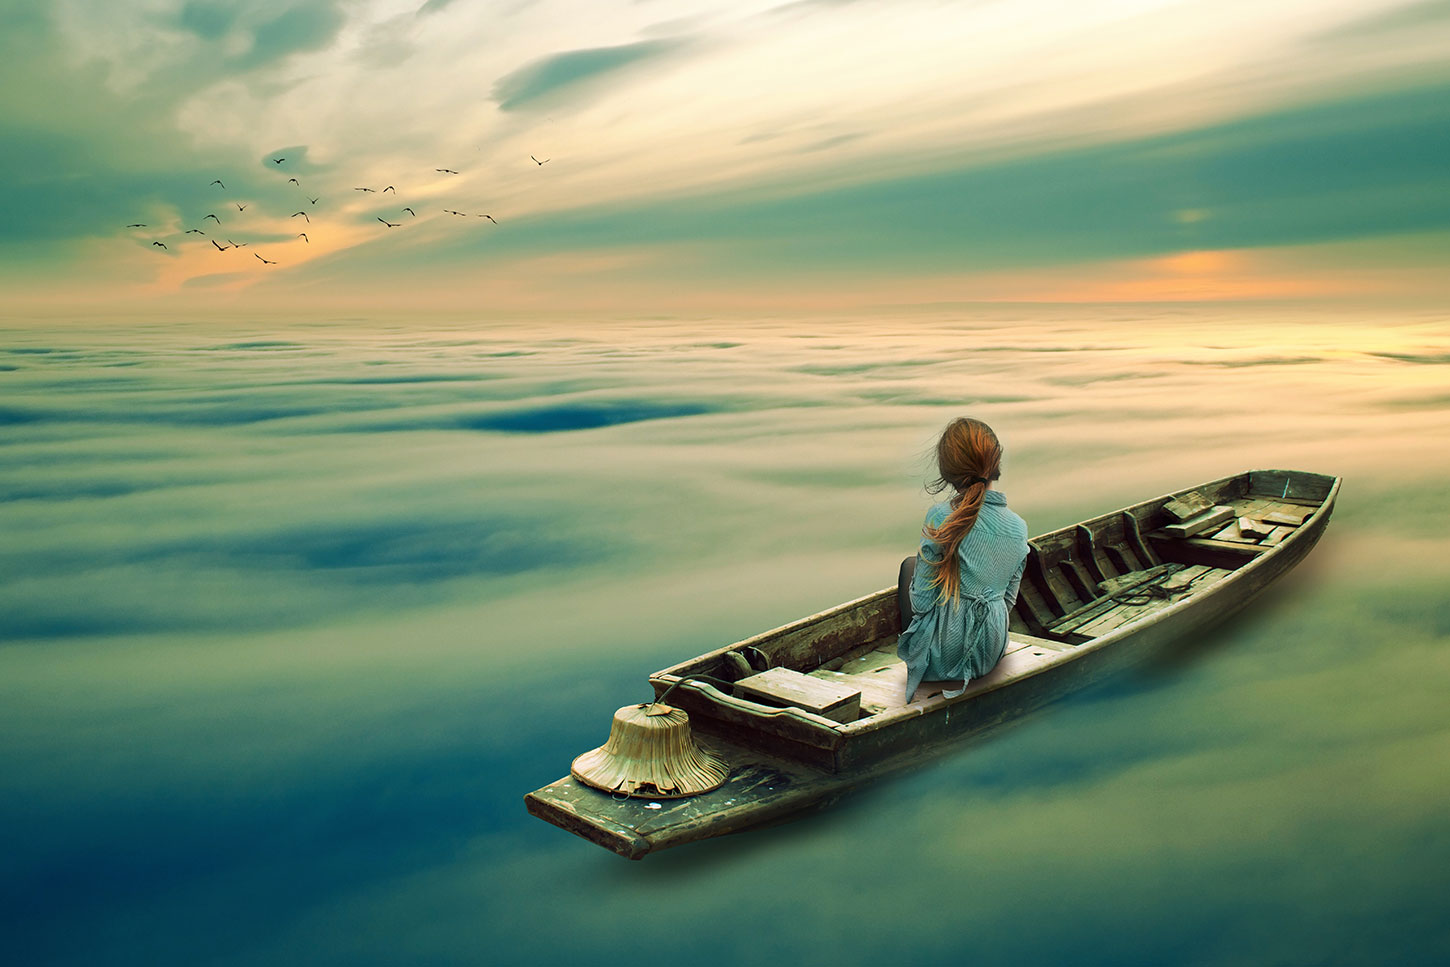 Woman in boat on ethereal sea